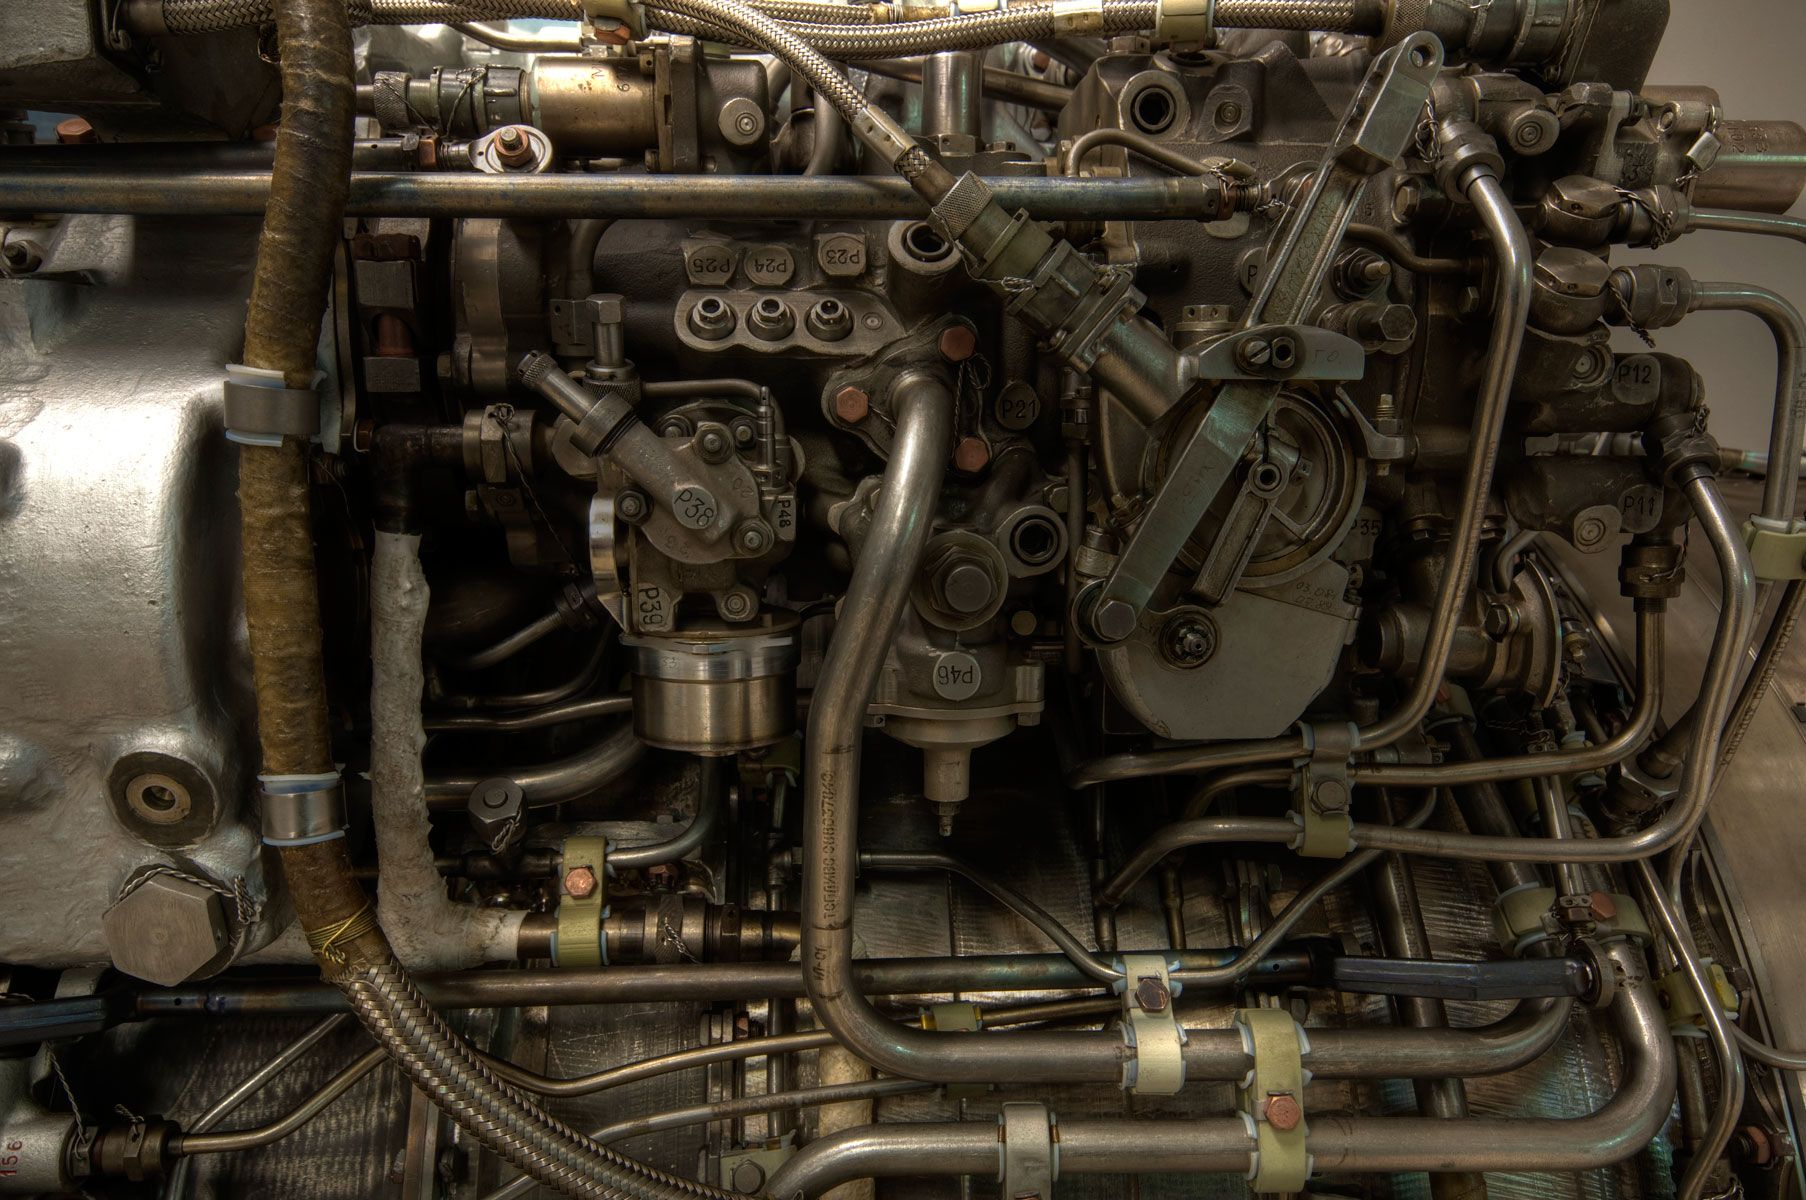 Pin by fifer hobby supply on cool engines with images